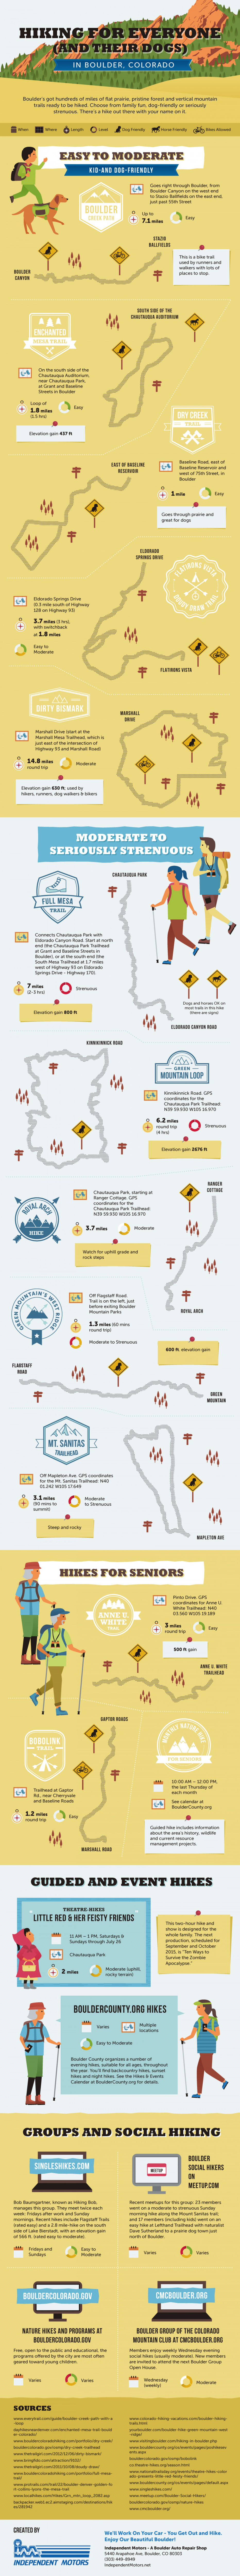 Boulder Hiking Trails for Everyone Infographic